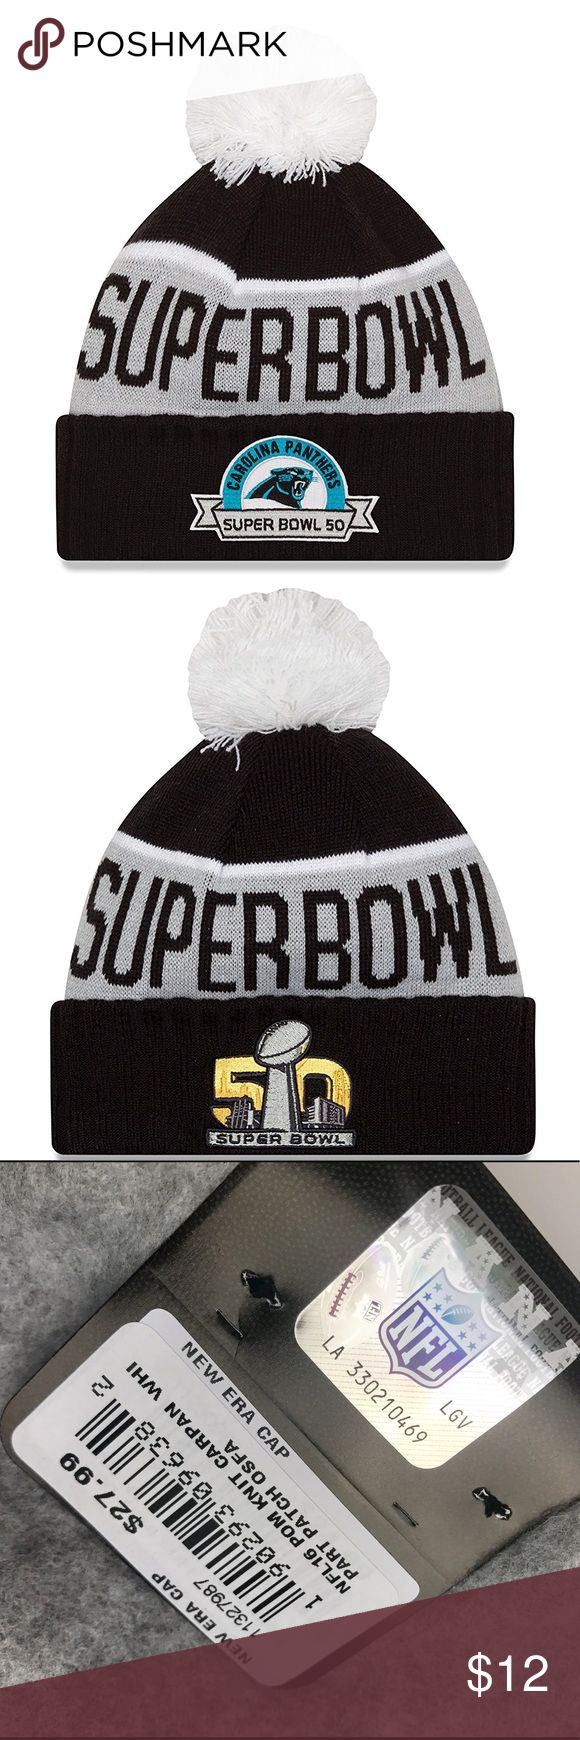 Carolina Panthers Super Bowl 50 Beanie Brand New Officially Licensed with tags. This New Era Panthers Super Bowl 50 Participation Knit Beanie features the Super Bowl50 Logo on one side and the Panthers Logo on the other. Fluffy white pom pom on top and fully lined inside with cozy fleece. 190293096382 New Era Accessories Hats